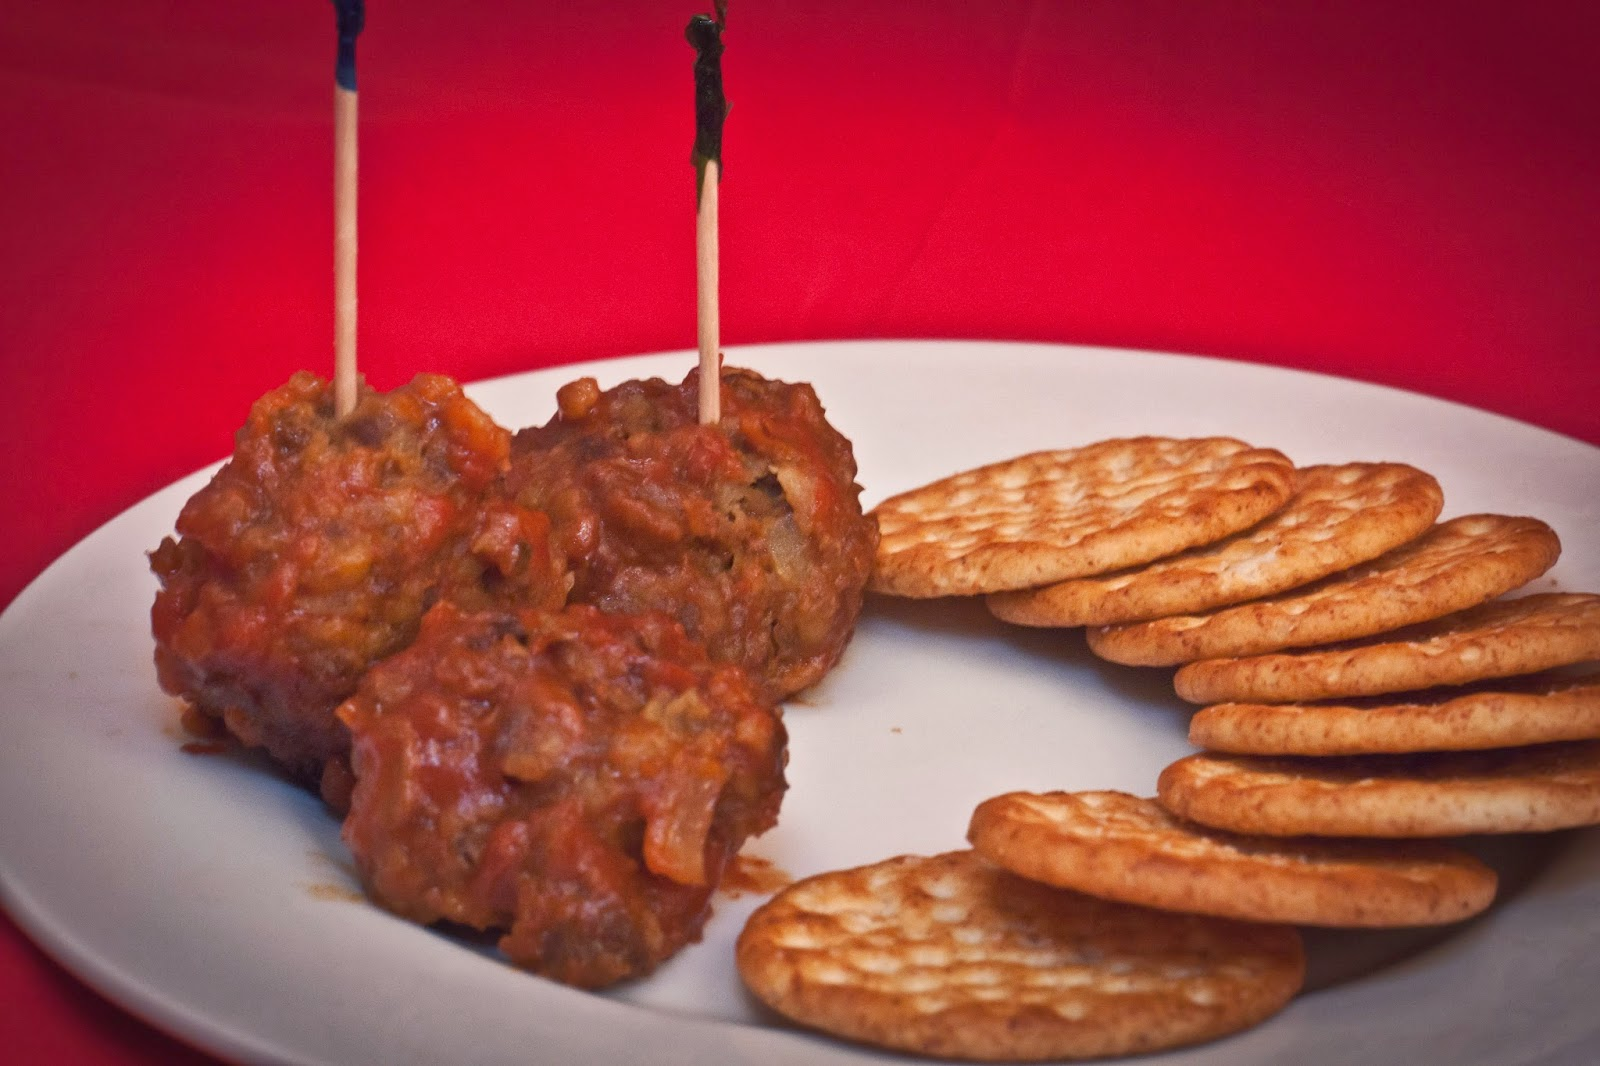 Cocktail Bison Meatballs